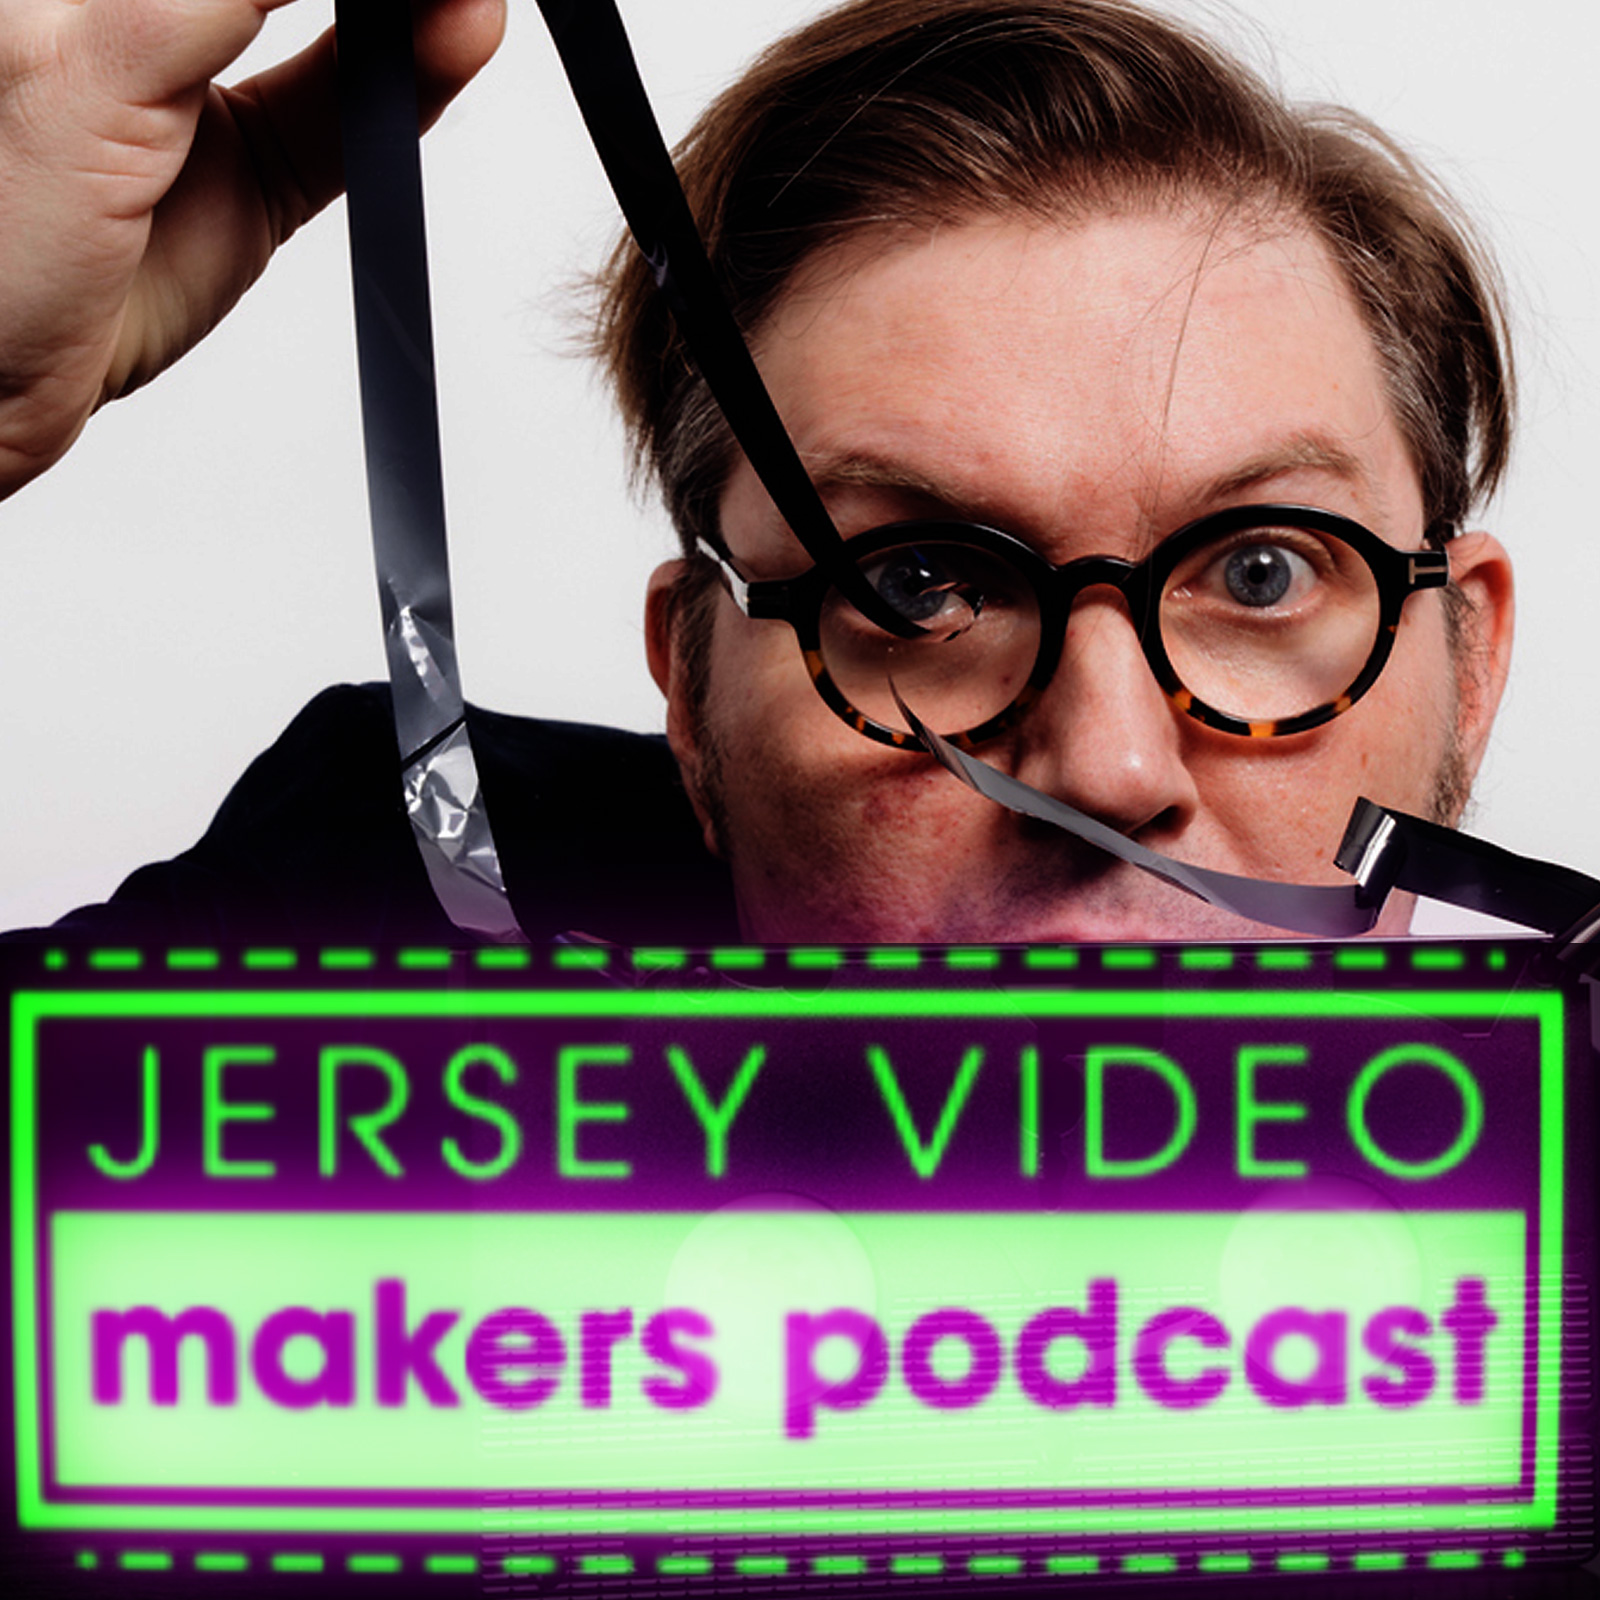 Jersey Video Makers Podcast show art